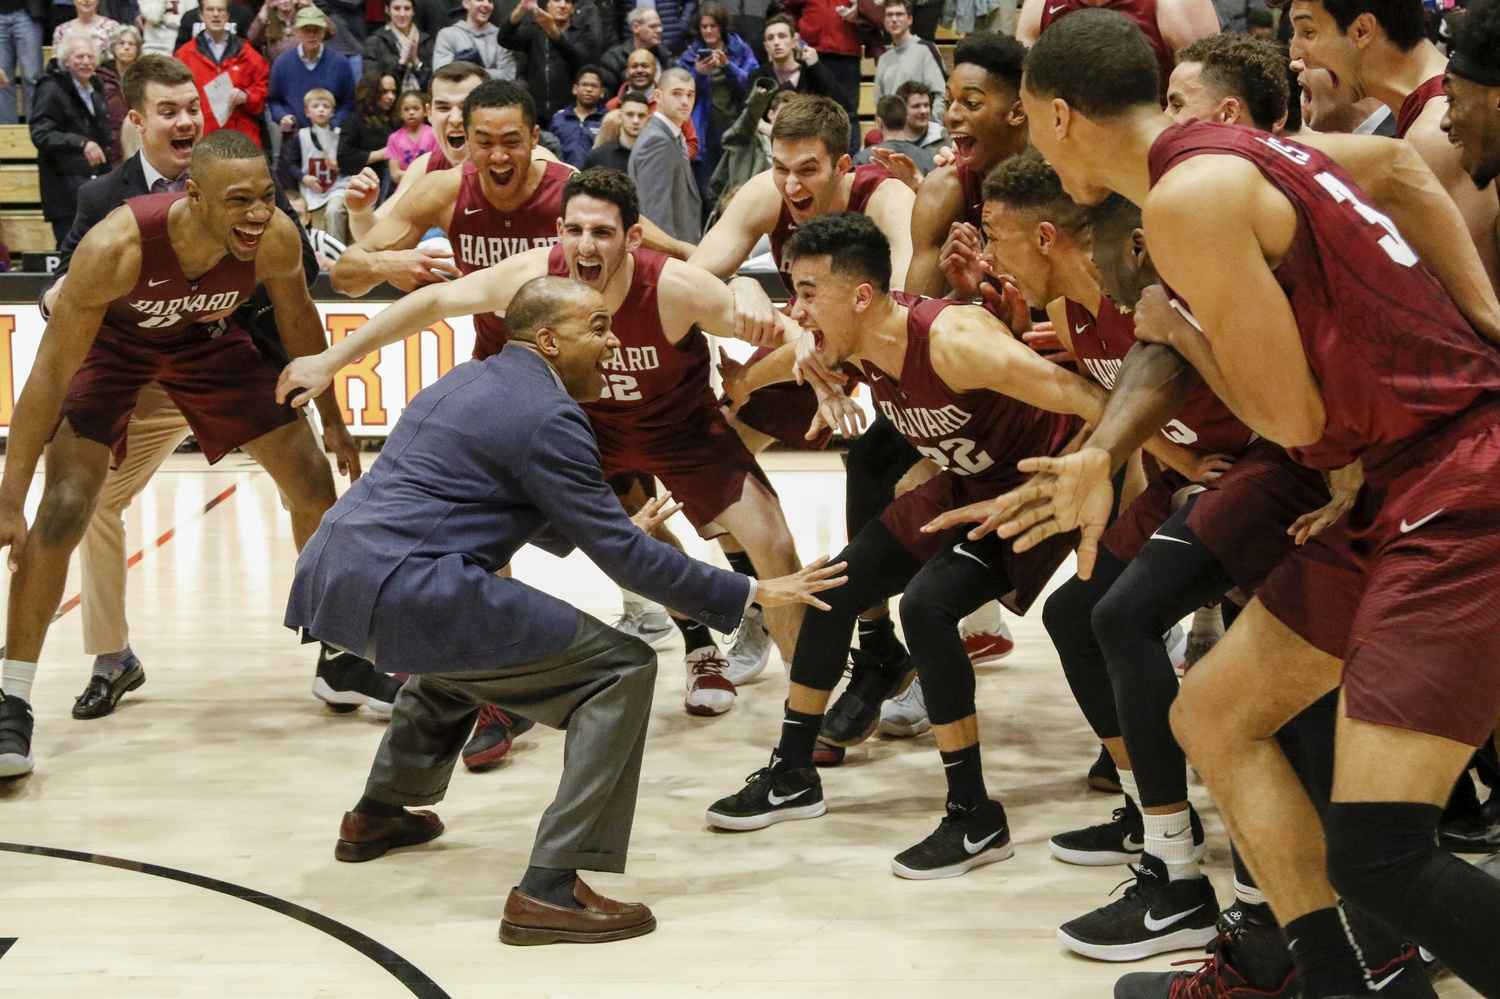 uncommon ground: a new age of recruiting for harvard basketball